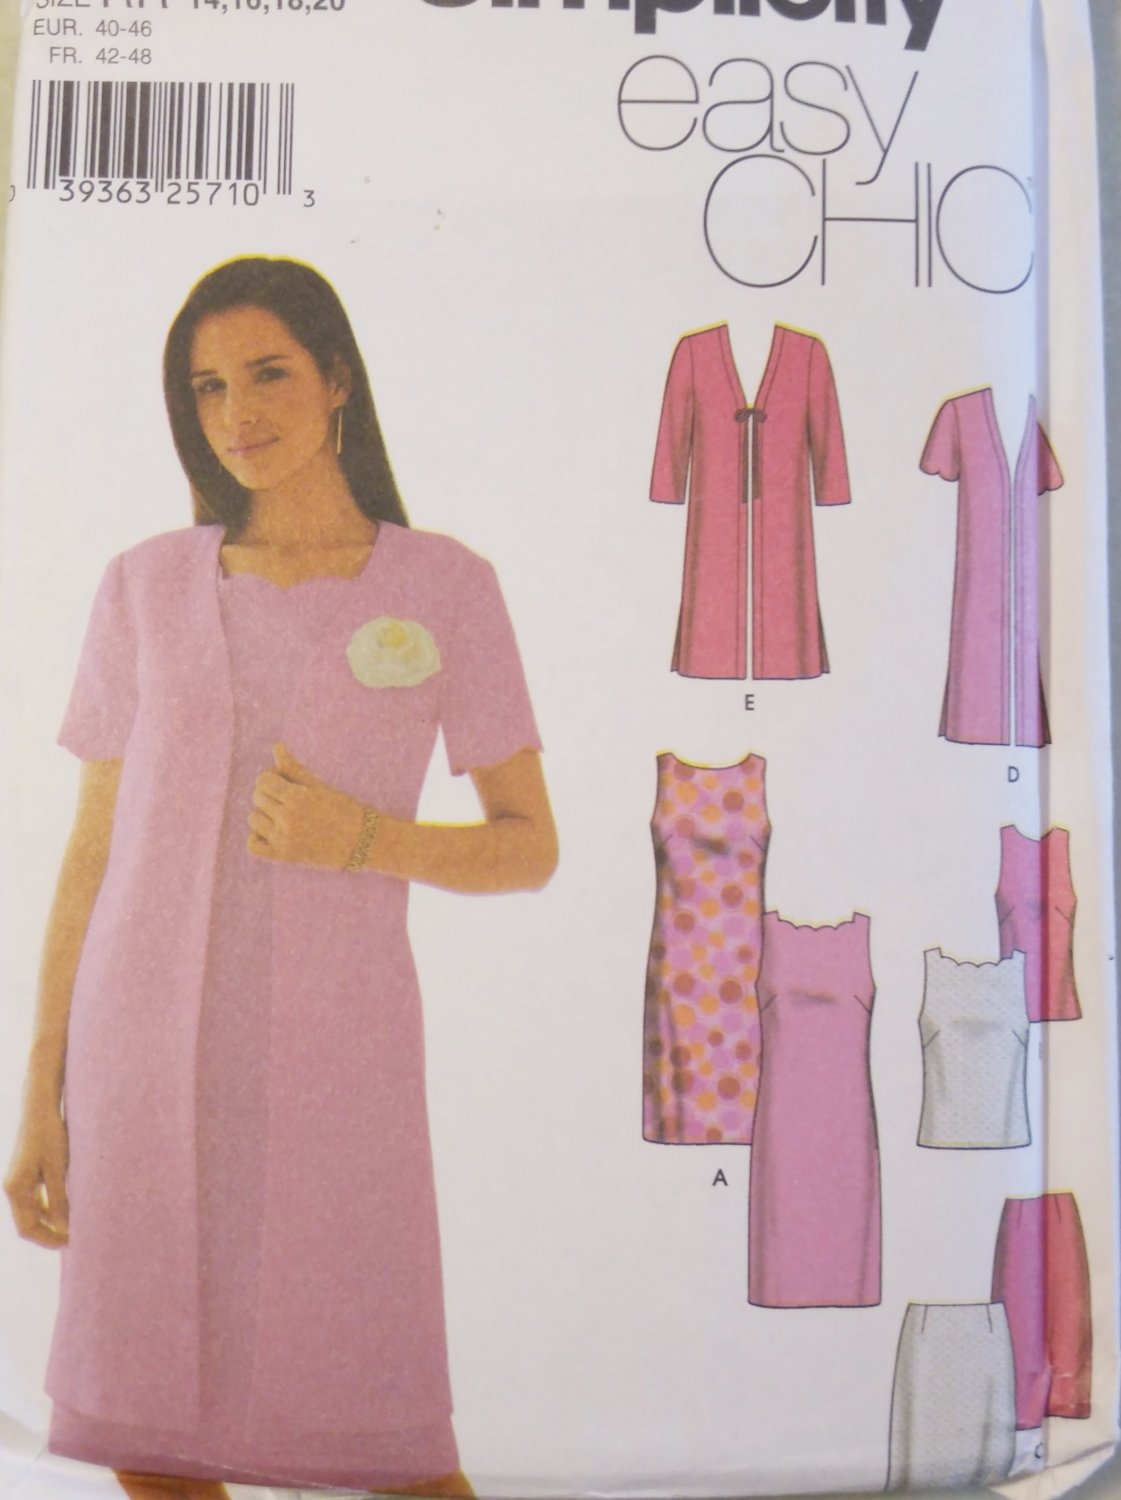 Misses Dress or Top, Skirt & Jacket Pattern  Simplicity 7160 Pattern, Size 14 to 20, Uncut